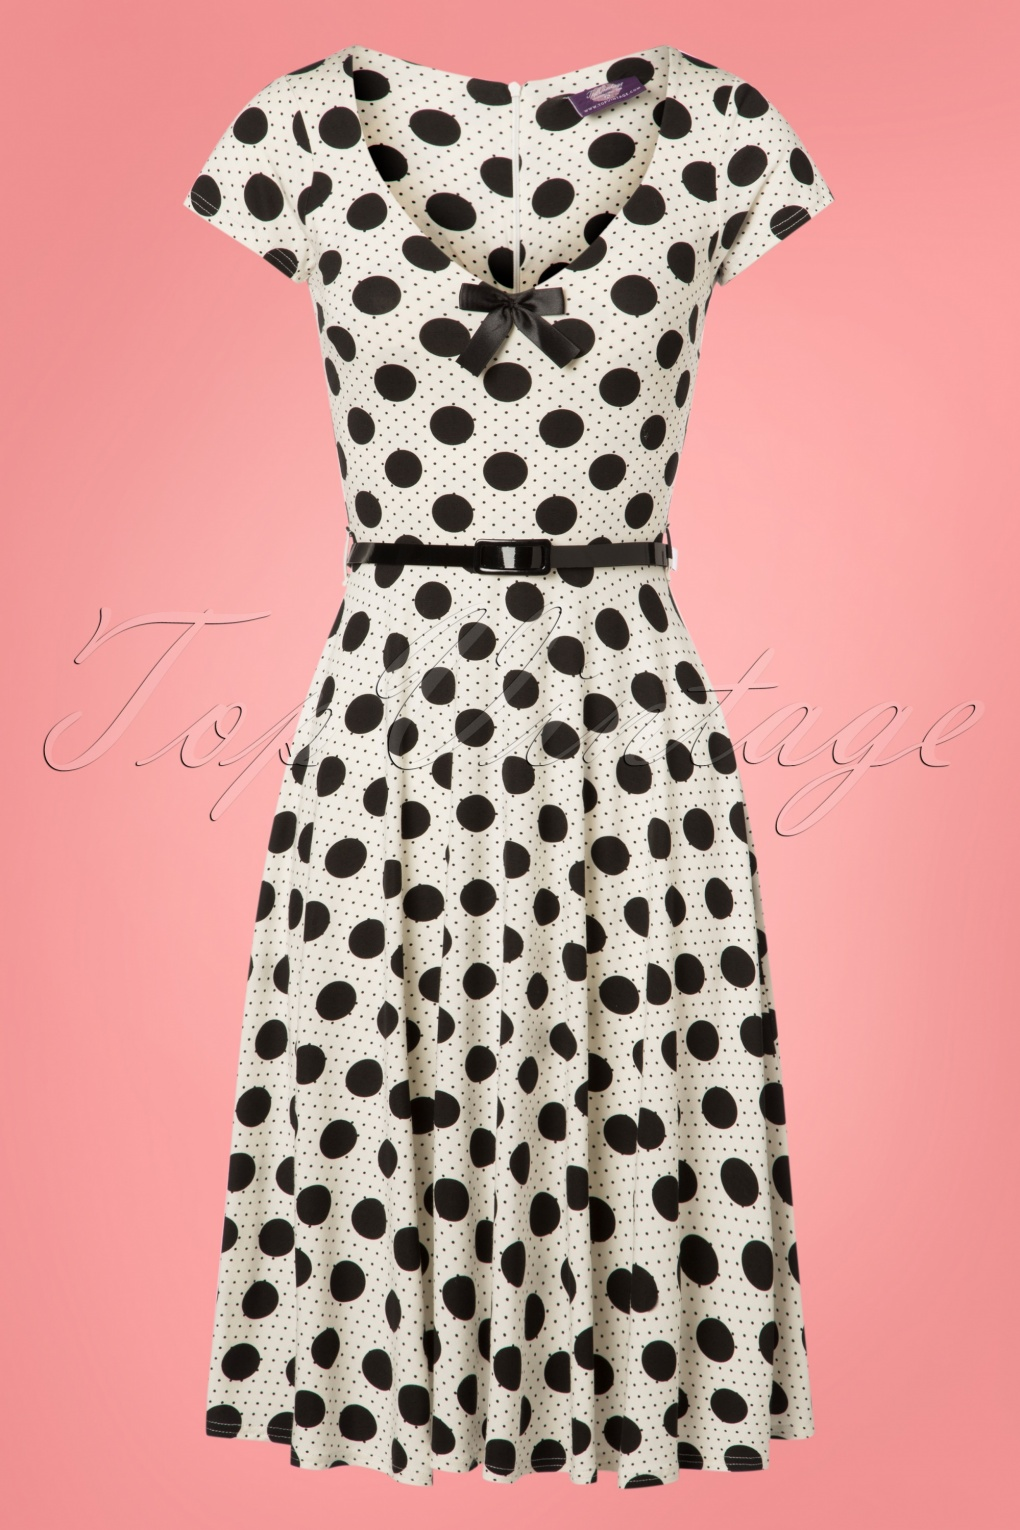 50 Vintage Inspired Clothing Stores 50s Blossom Dot Swing Dress in Black and White £60.39 AT vintagedancer.com